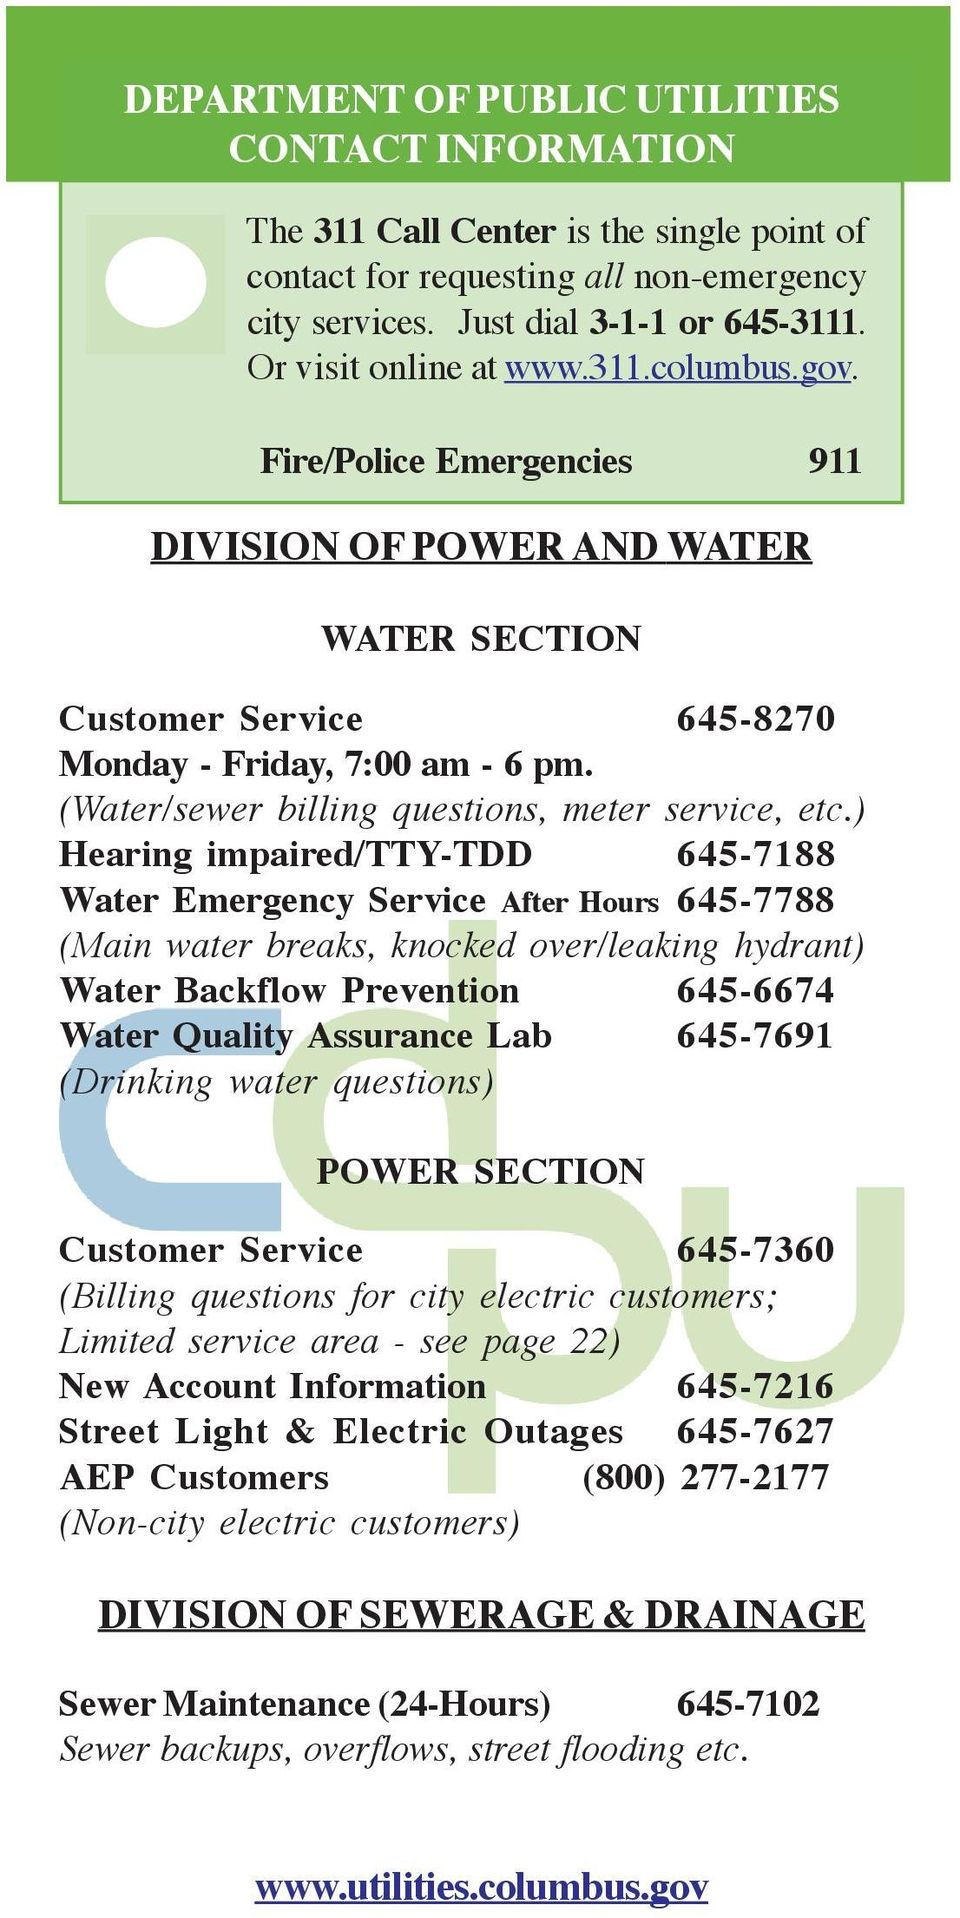 (Water/sewer billing questions, meter service, etc.